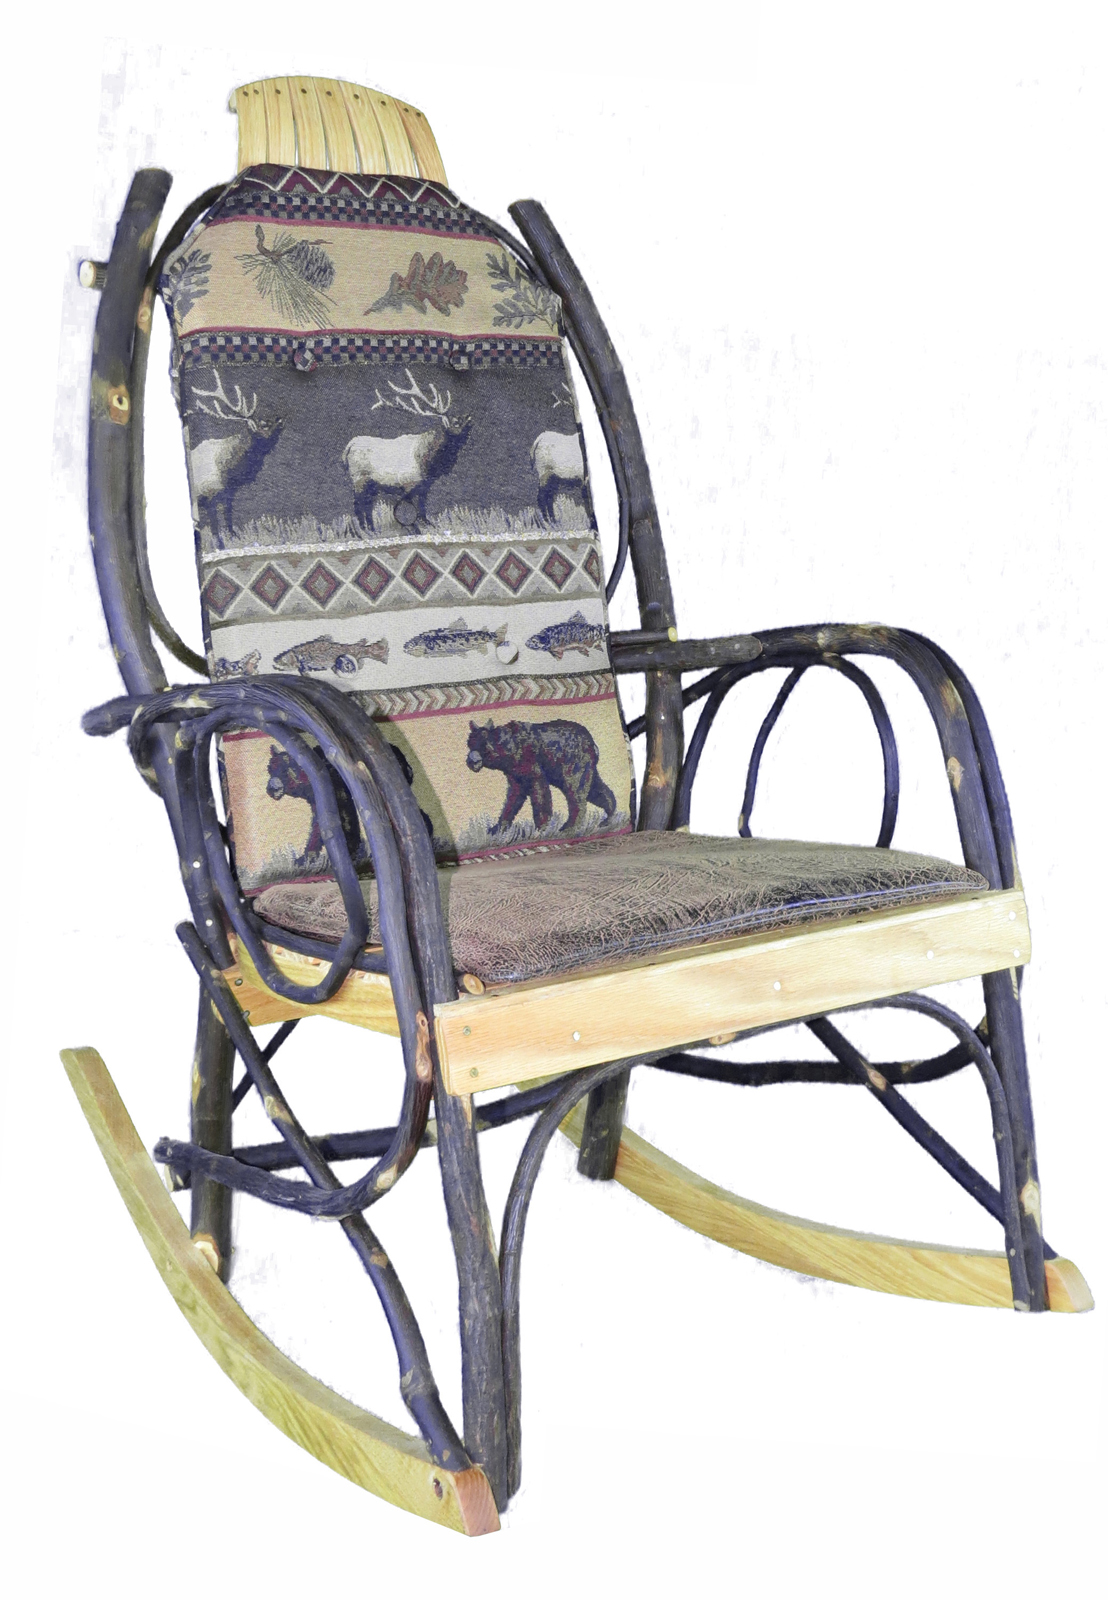 amish made rocking chair cushions cheap silver spandex covers for sale cushion set